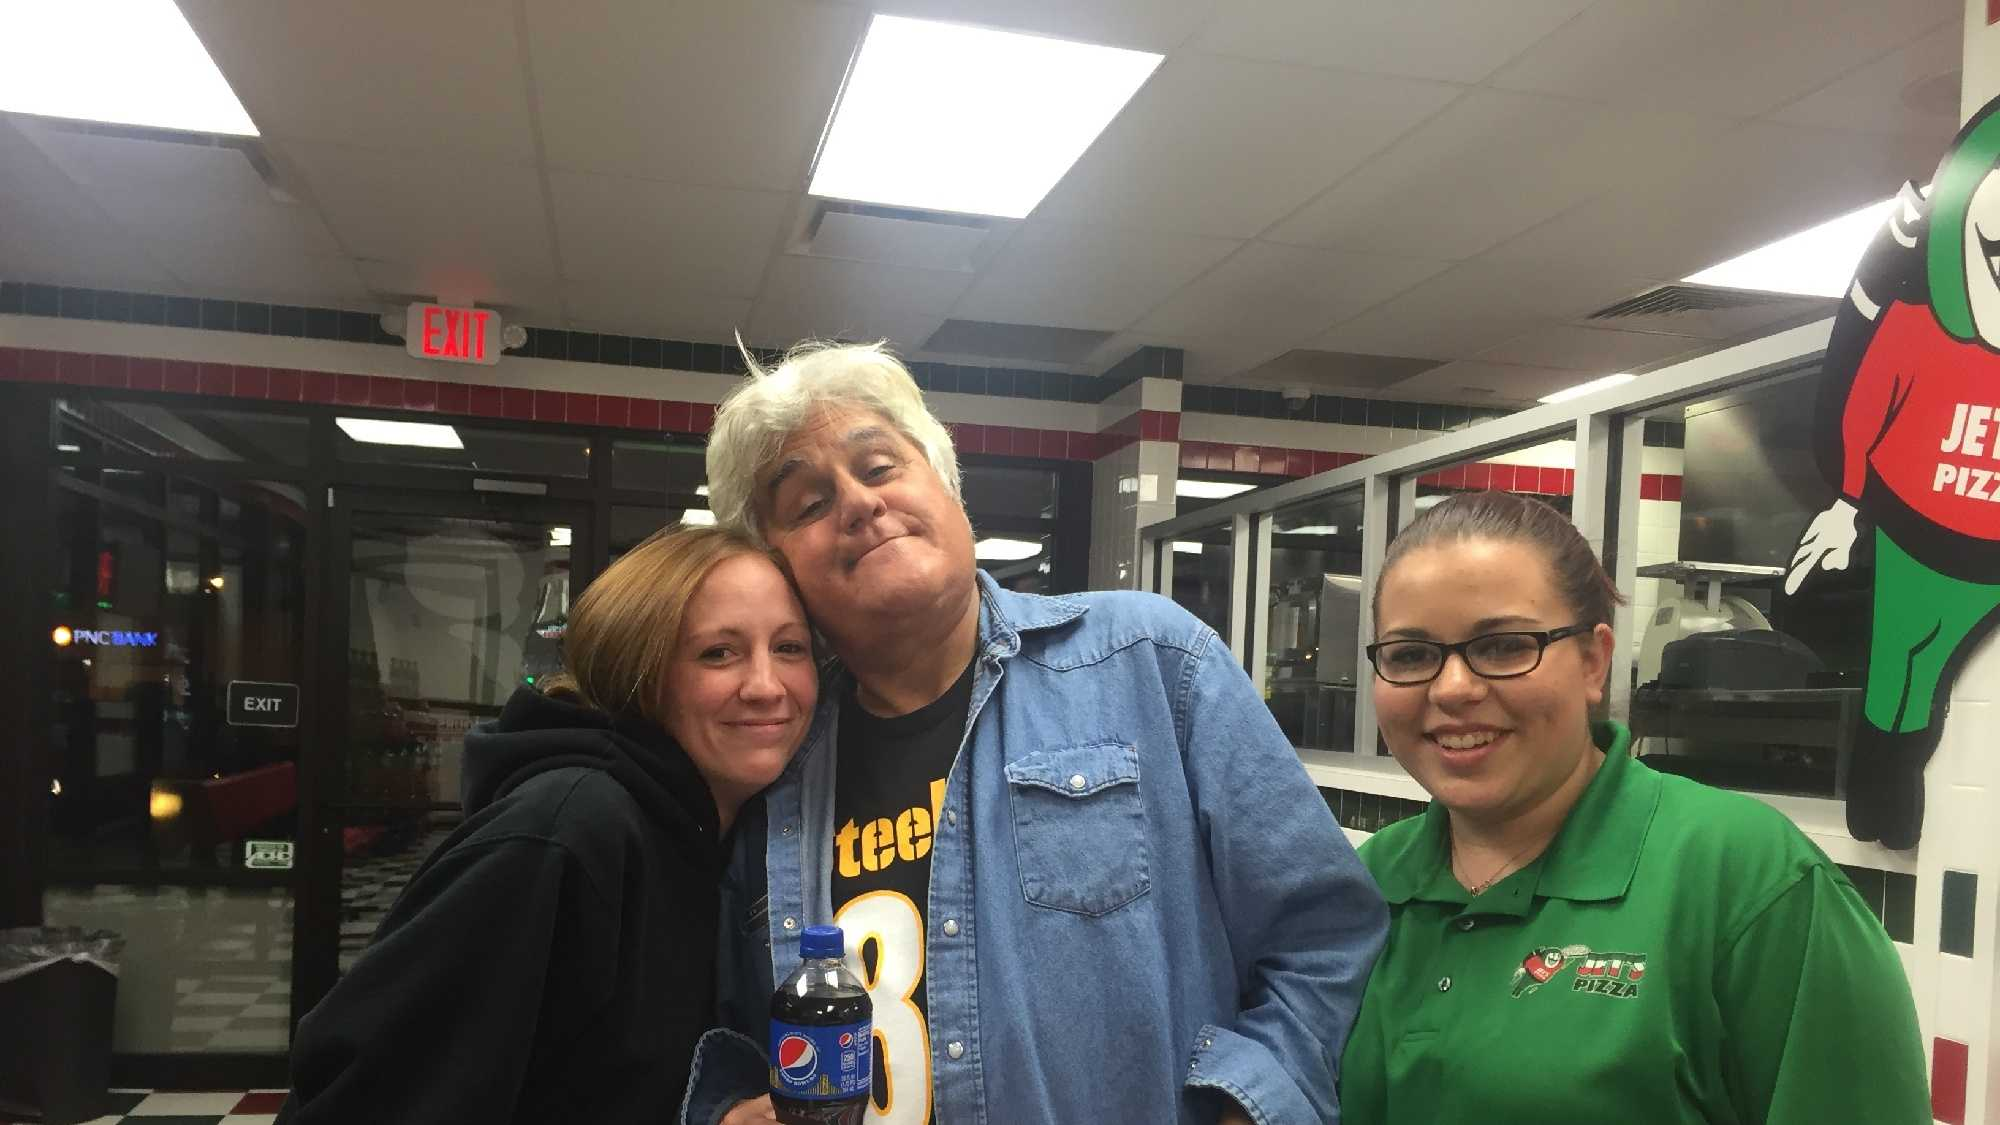 Jet's Pizza Manager JoAnn Liebro (left) and crew member Bryanna Zembroski (right) pose with Jay Leno in a photo provided by the restaurant.